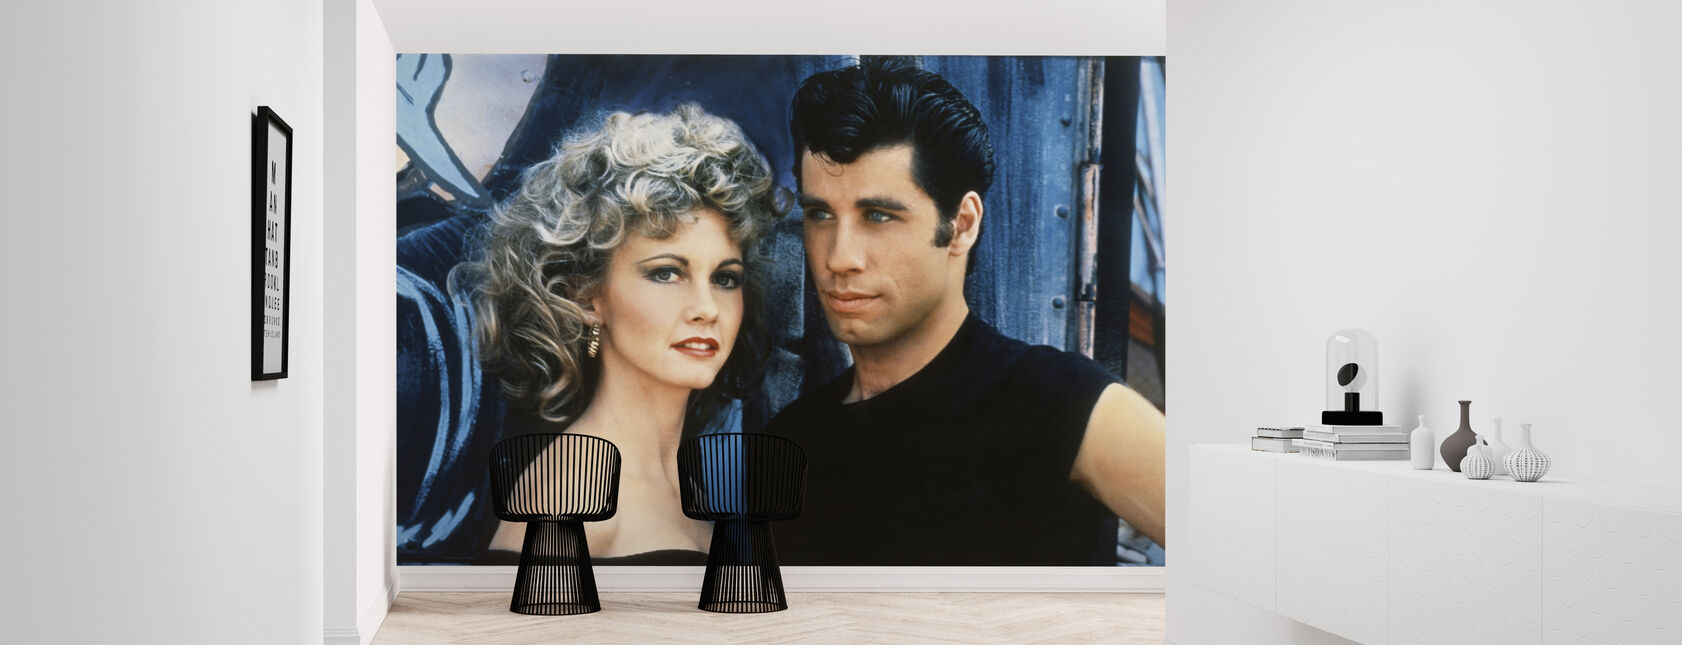 Sandy and Danny - John Travolta and Olivia Newton John - Wallpaper - Hallway